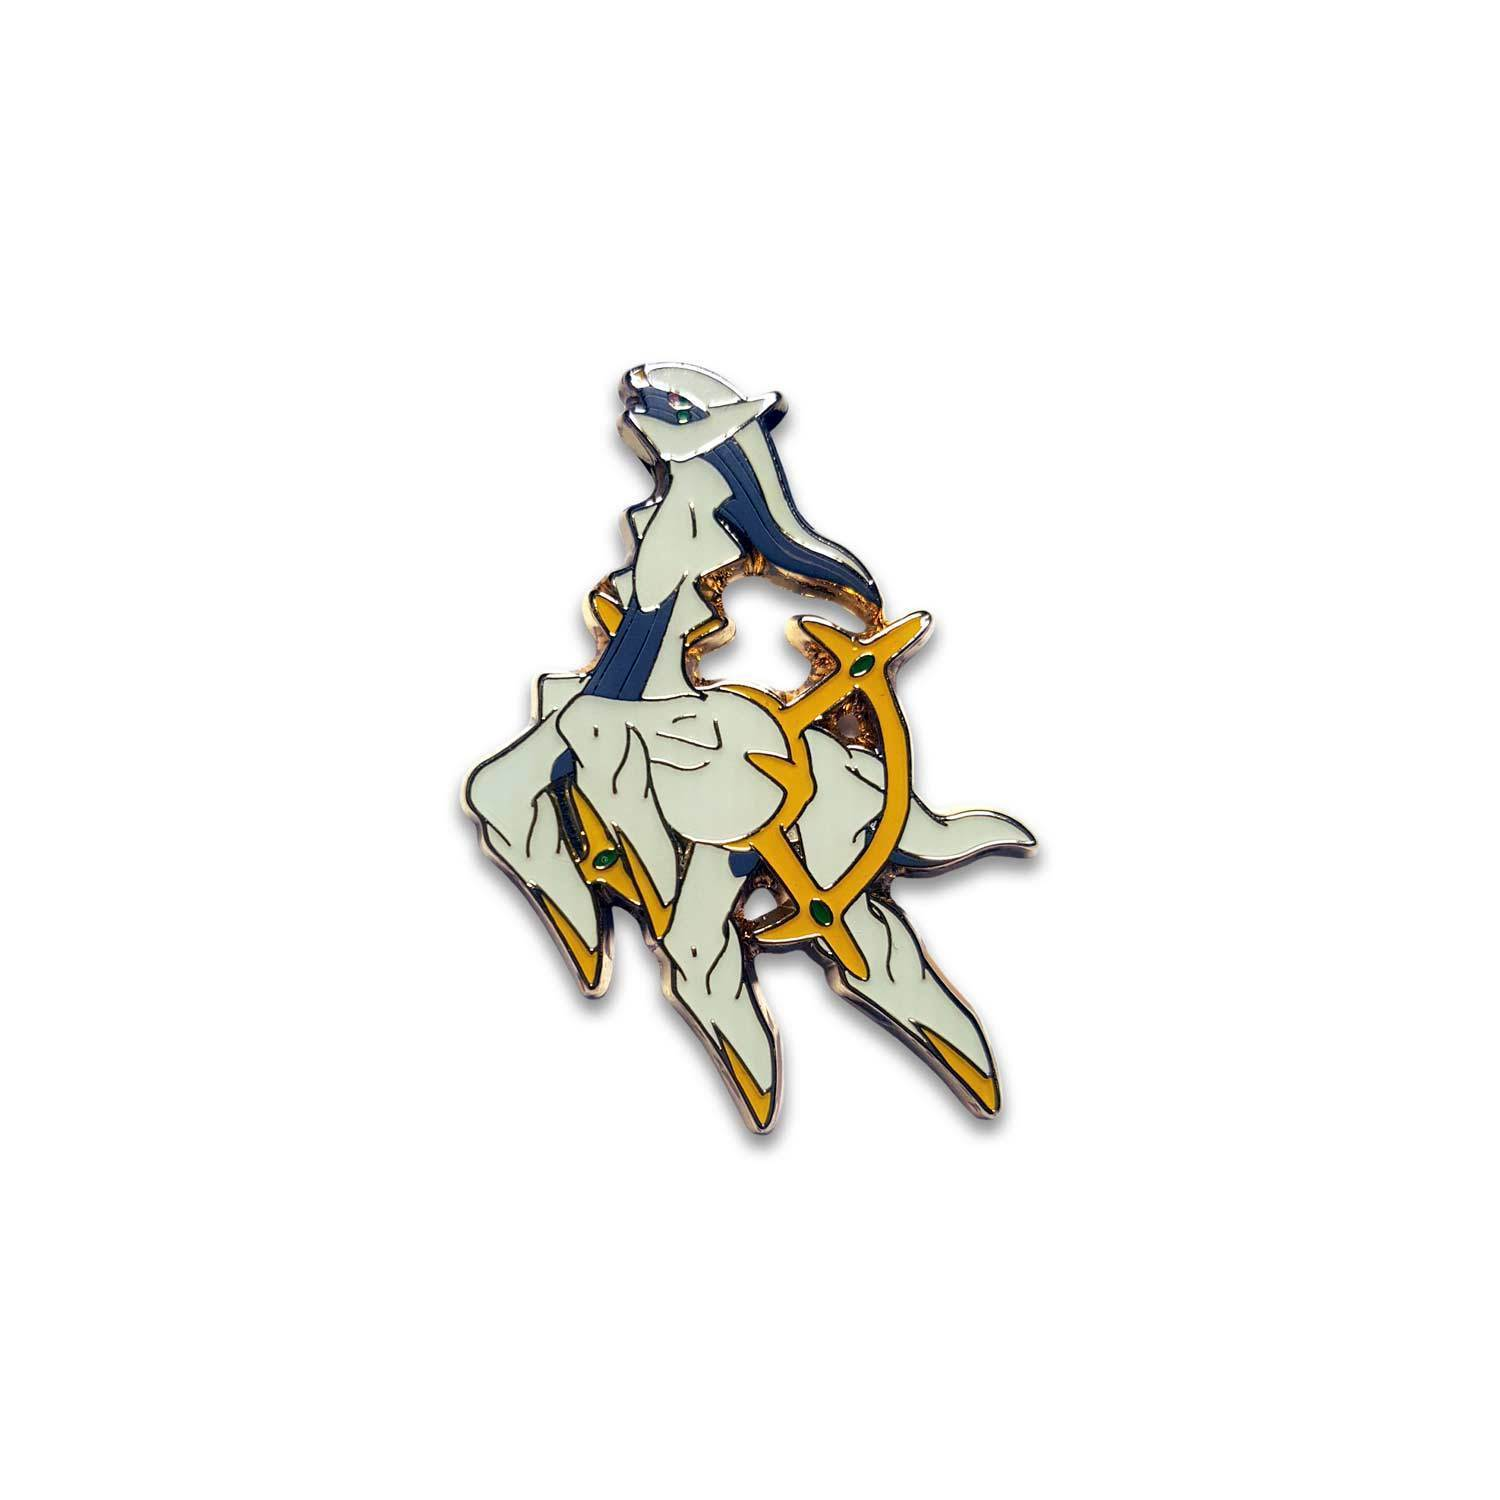 POKEMON Mythical Jirachi + Arceus Mythical Collection Pin Box Generations Packs